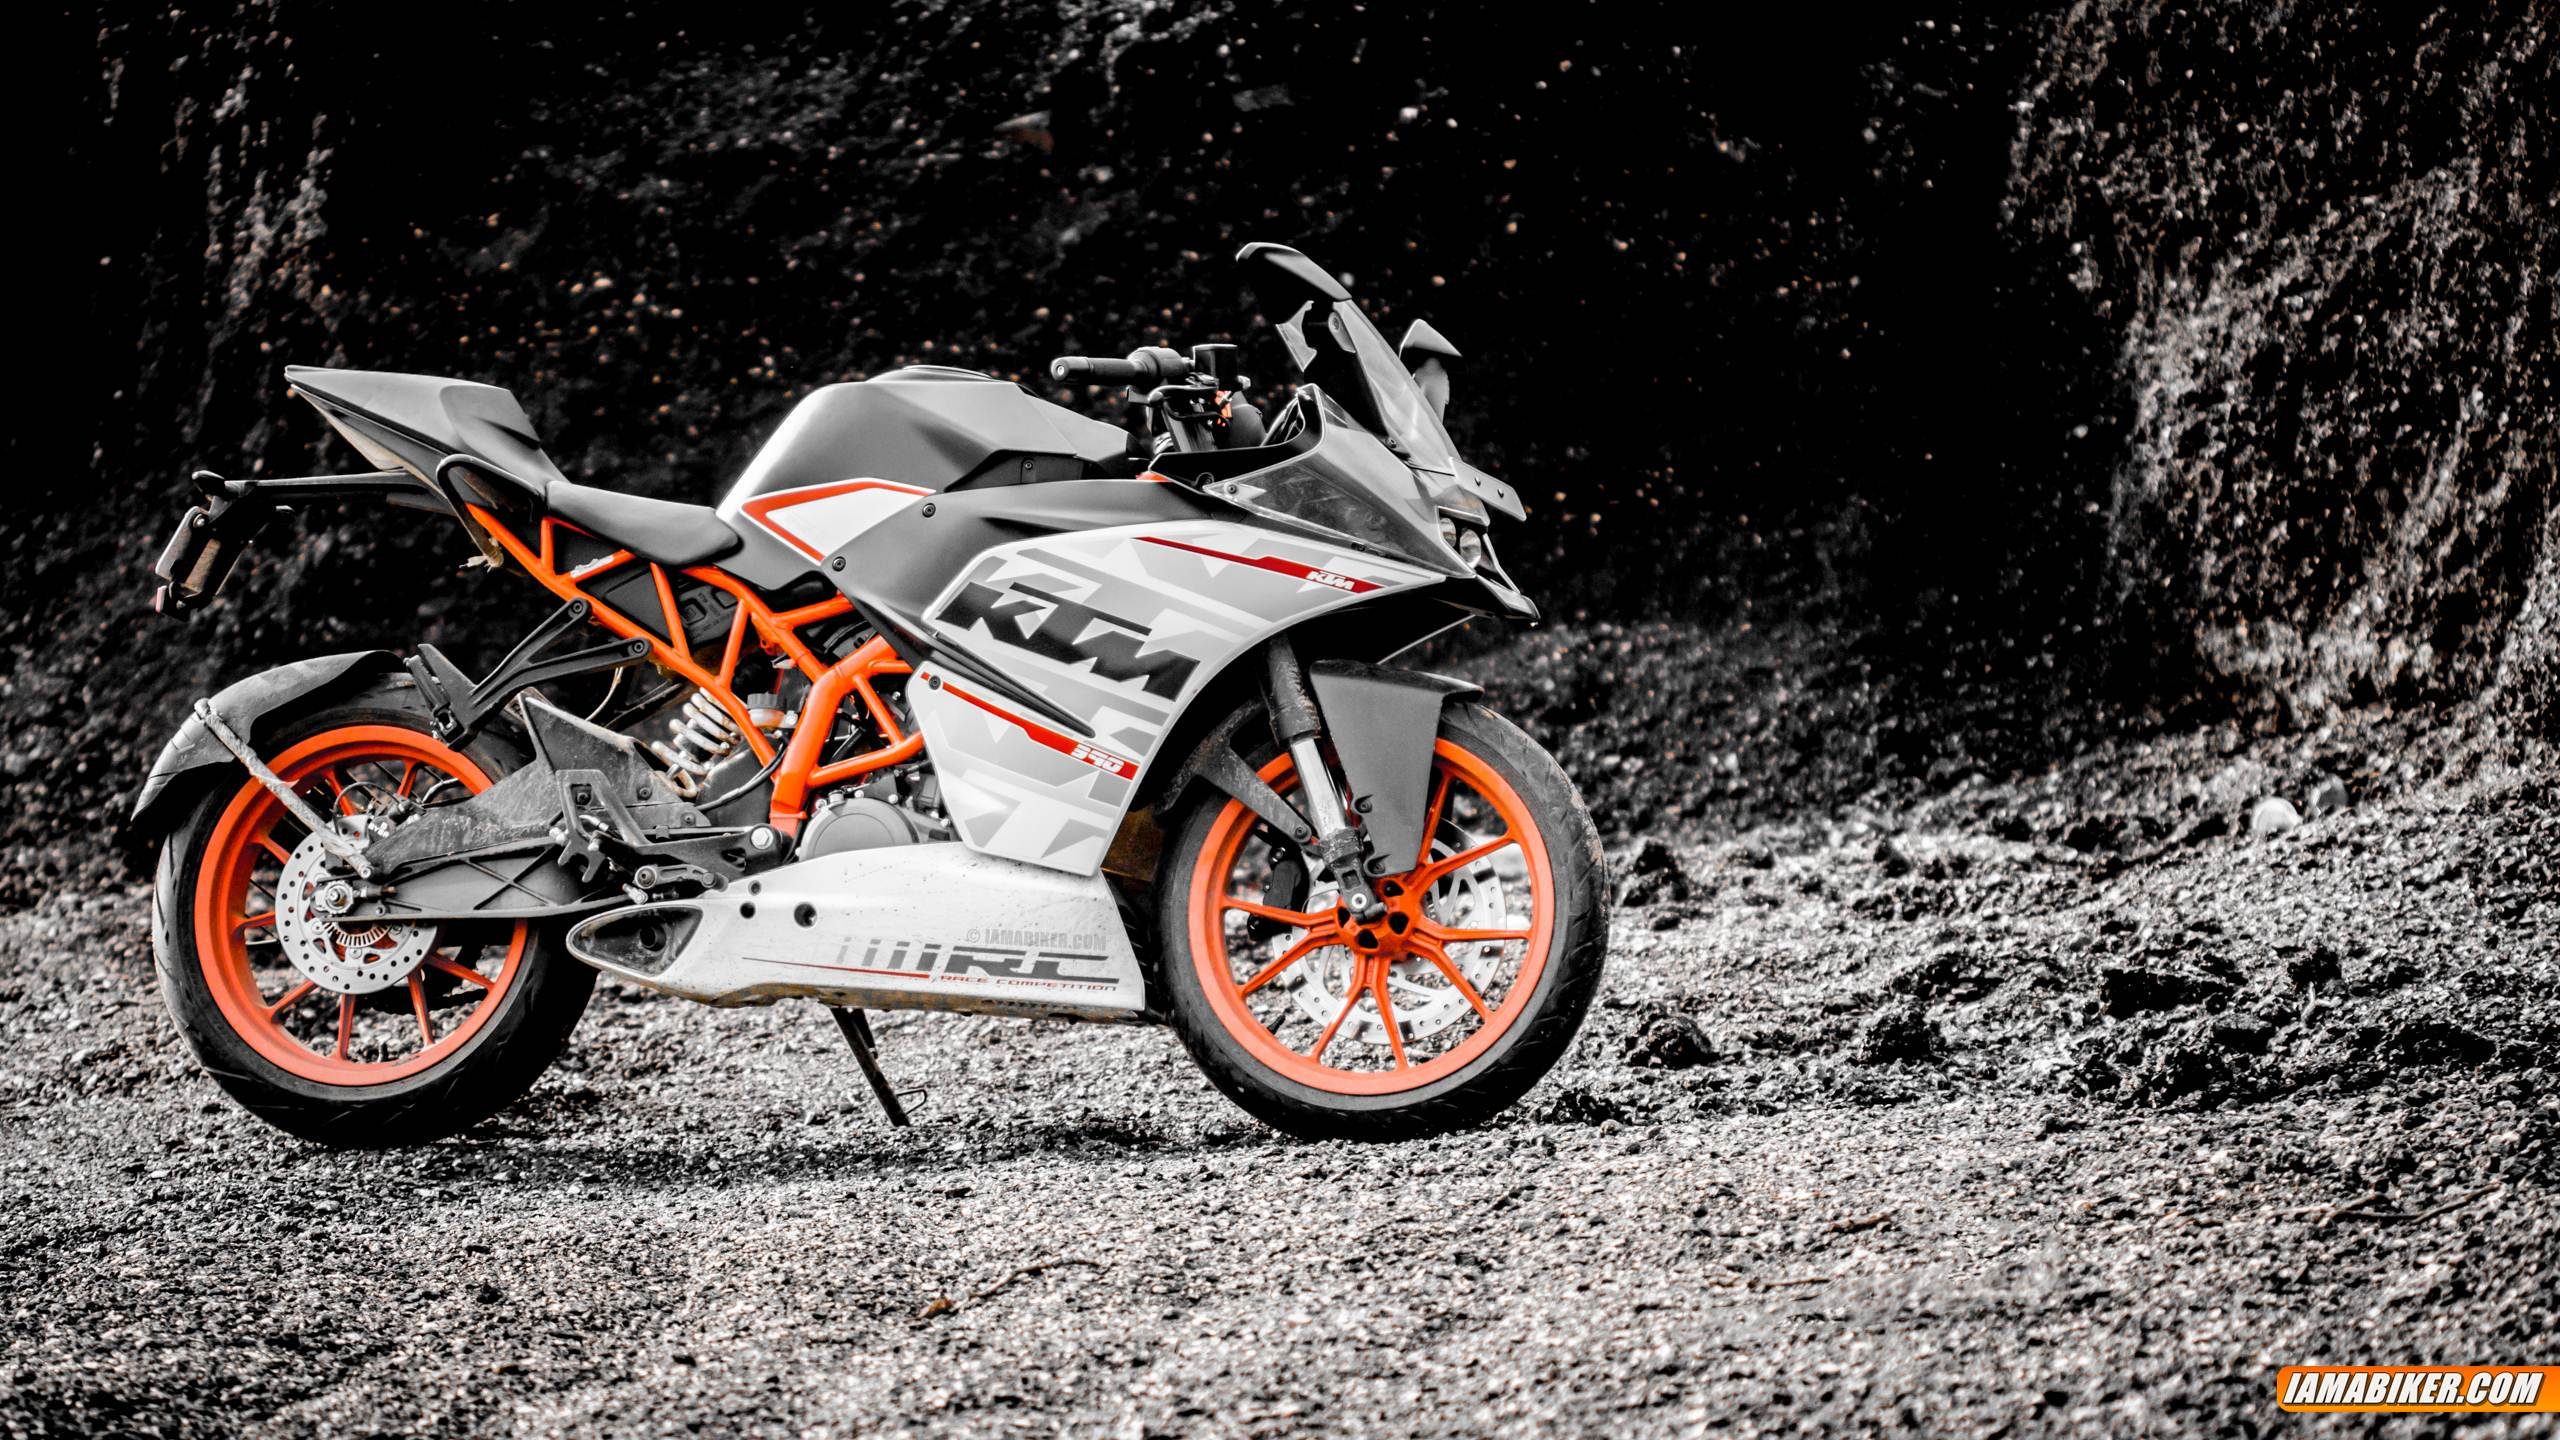 KTM RC 390 HD wallpapers 2560x1440